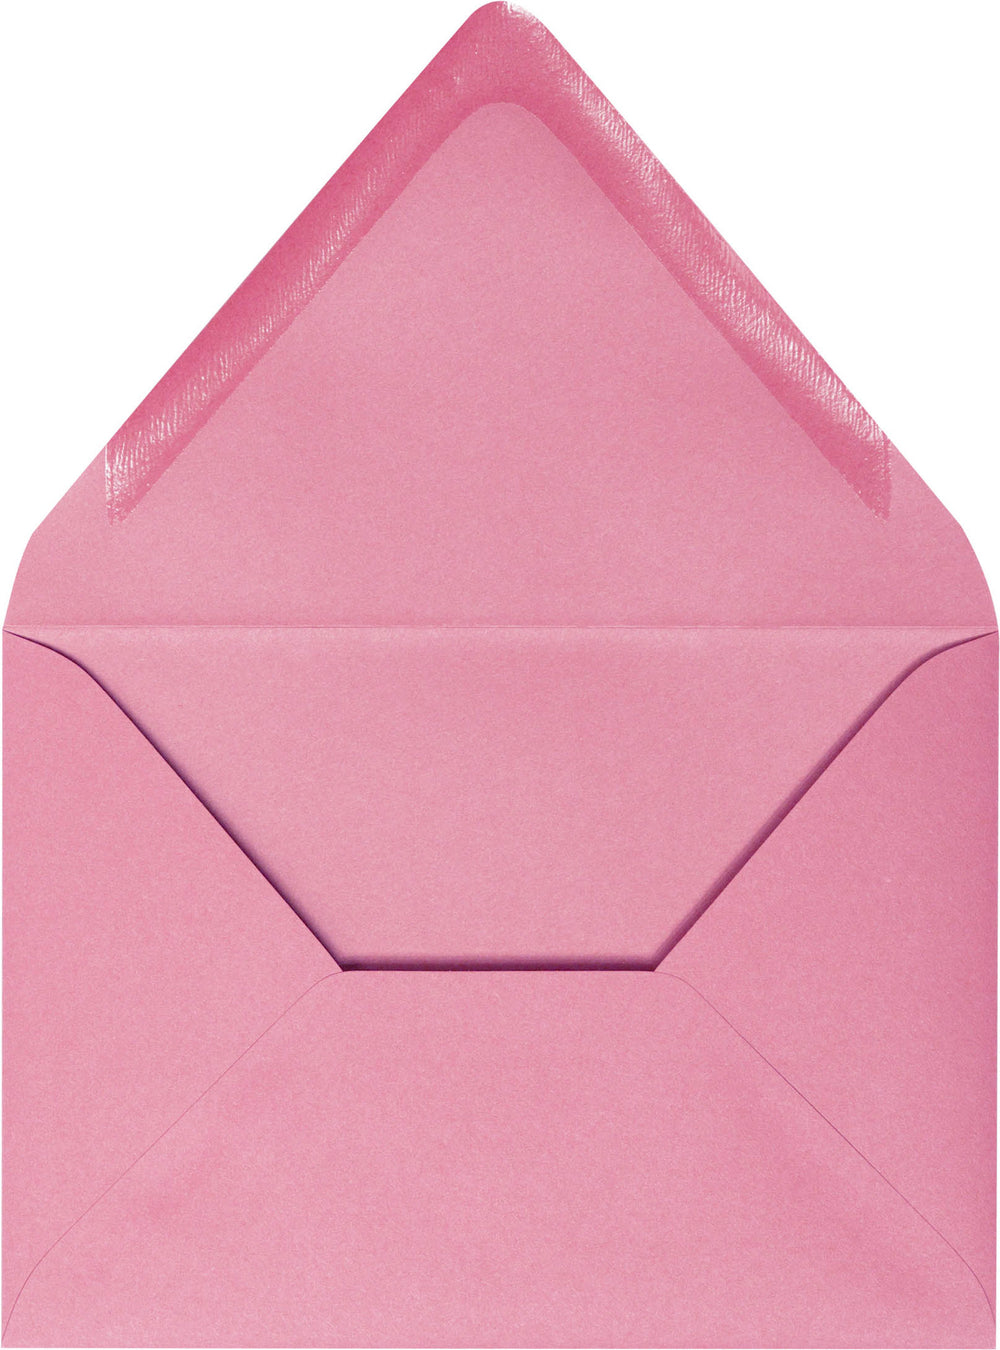 "A-1 (4 Bar) Cotton Candy Pink Solid Euro Flap Envelopes (3 5/8"" x 5 1/8"")"